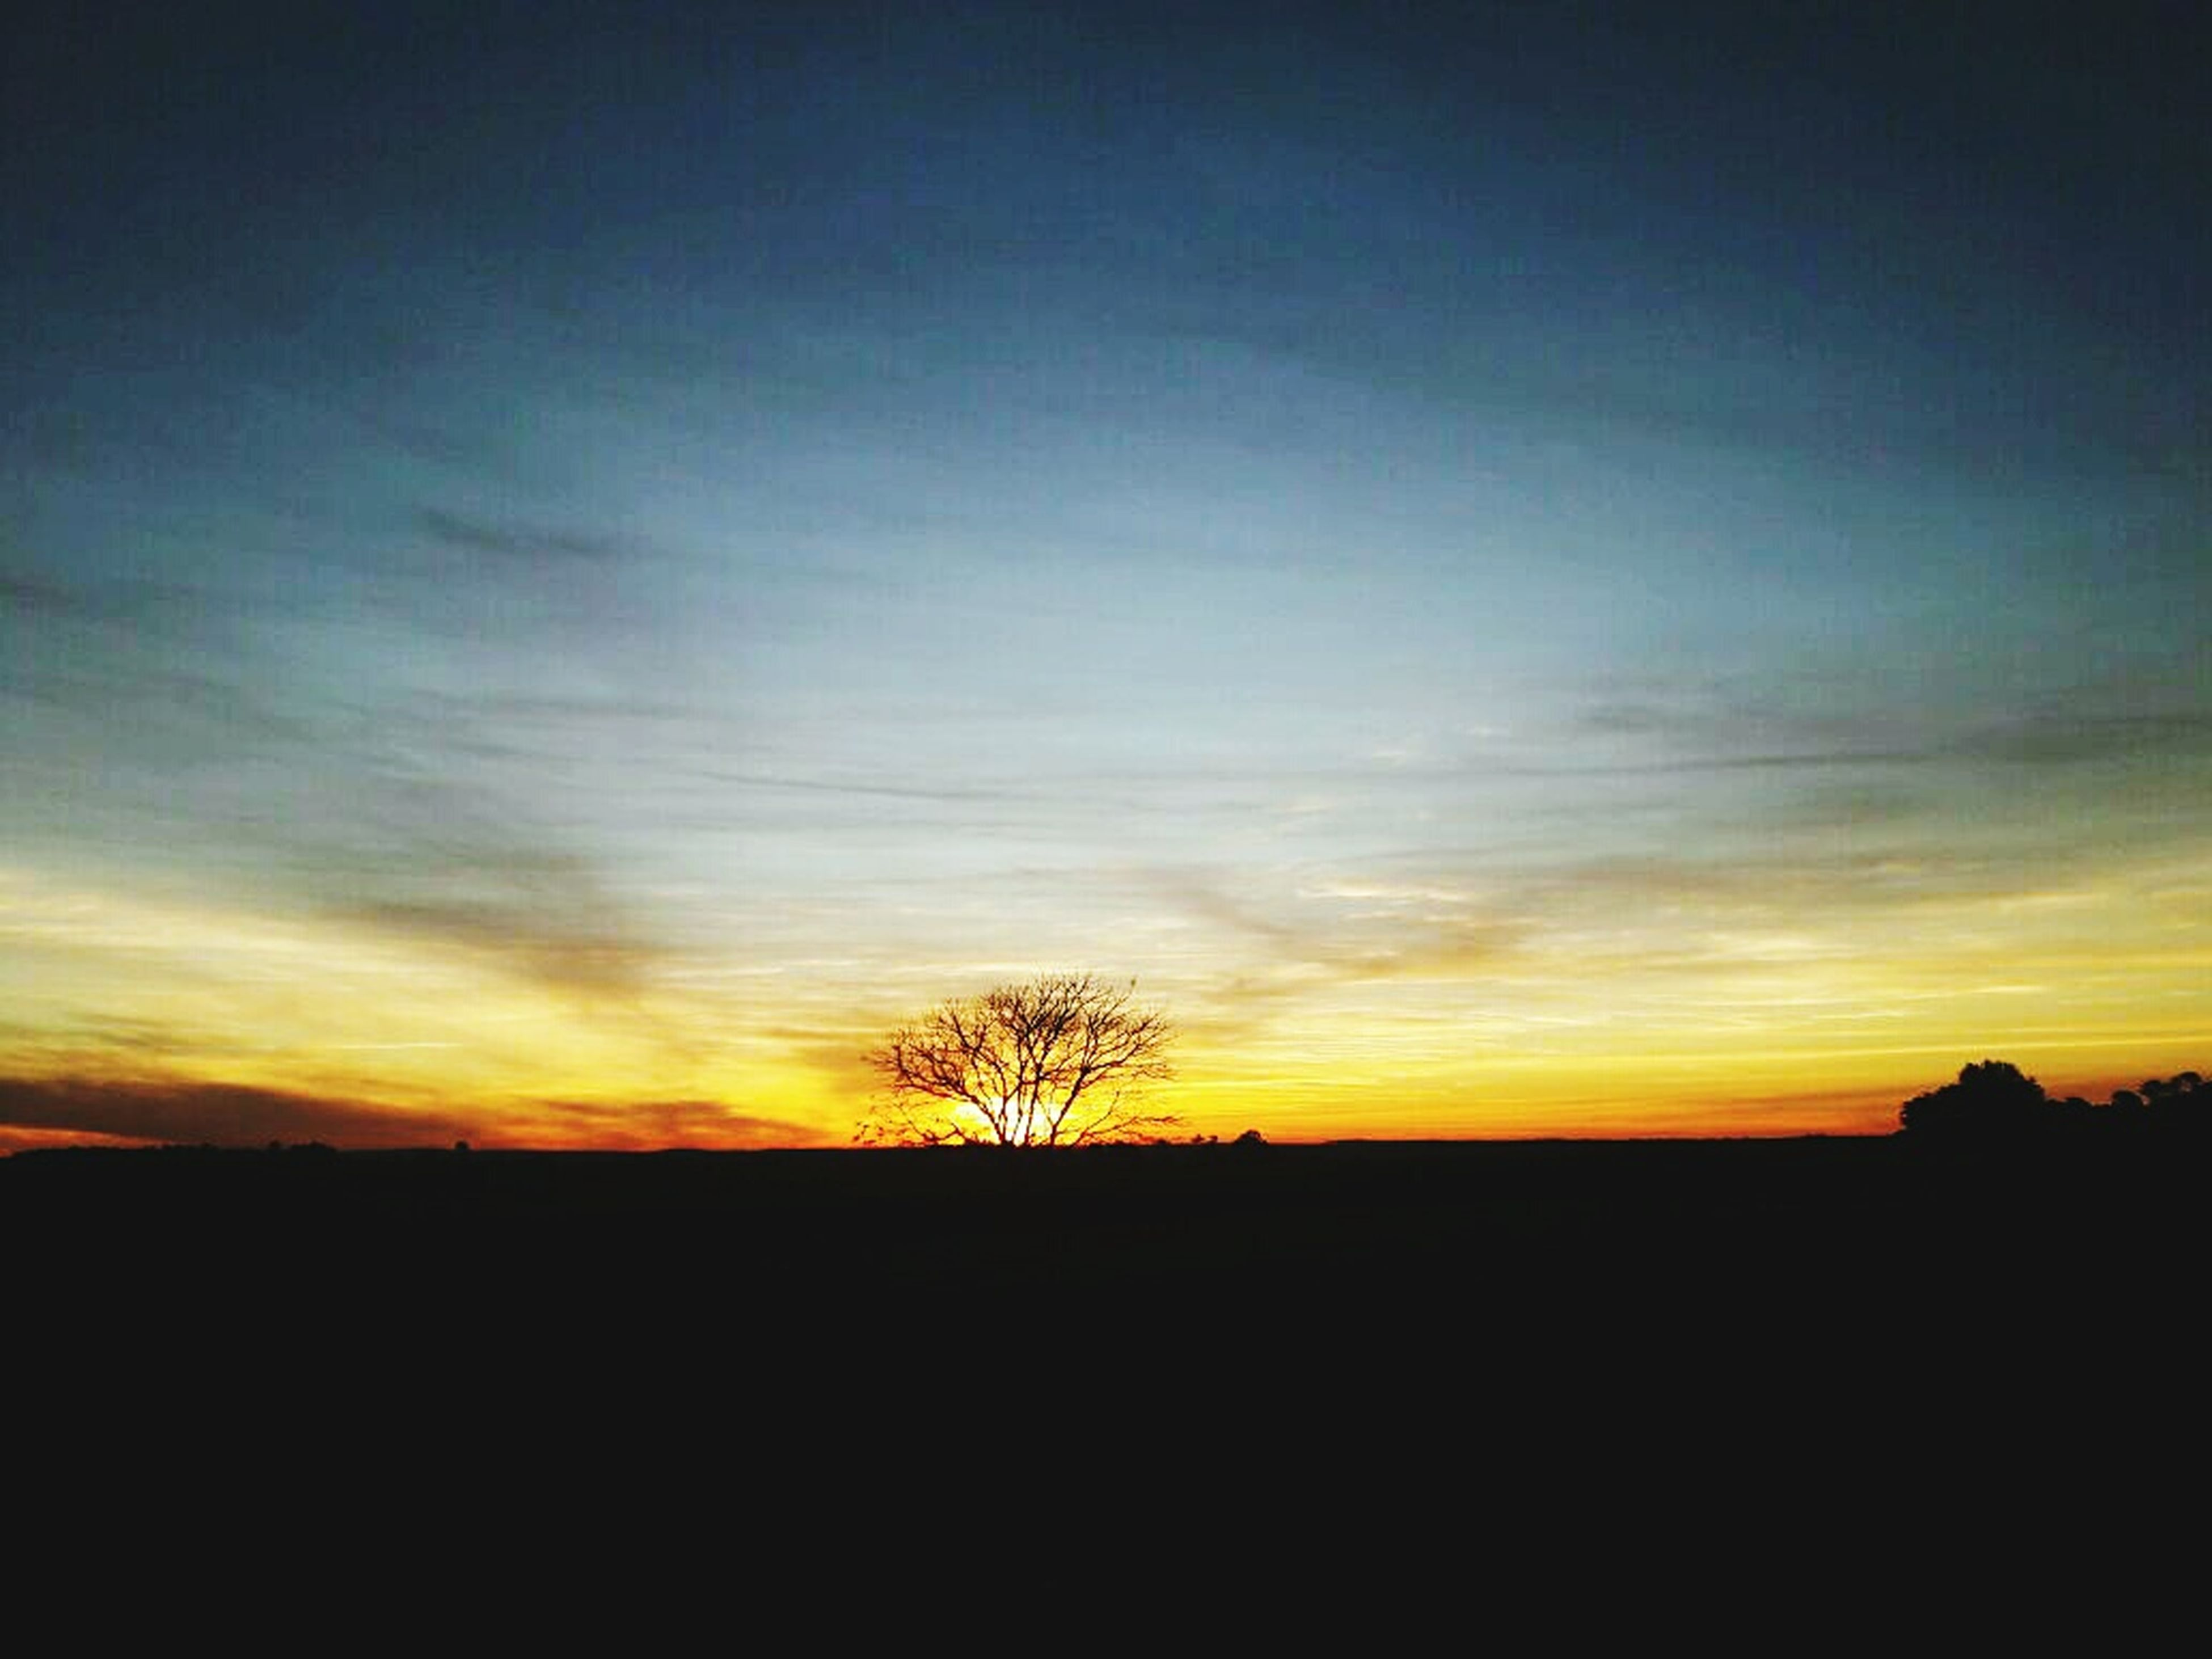 silhouette, sunset, landscape, tranquil scene, bare tree, tranquility, scenics, dark, sky, beauty in nature, nature, horizon over land, cloud, moody sky, field, outline, majestic, outdoors, calm, back lit, no people, dramatic sky, non-urban scene, solitude, remote, atmosphere, non urban scene, cloud - sky